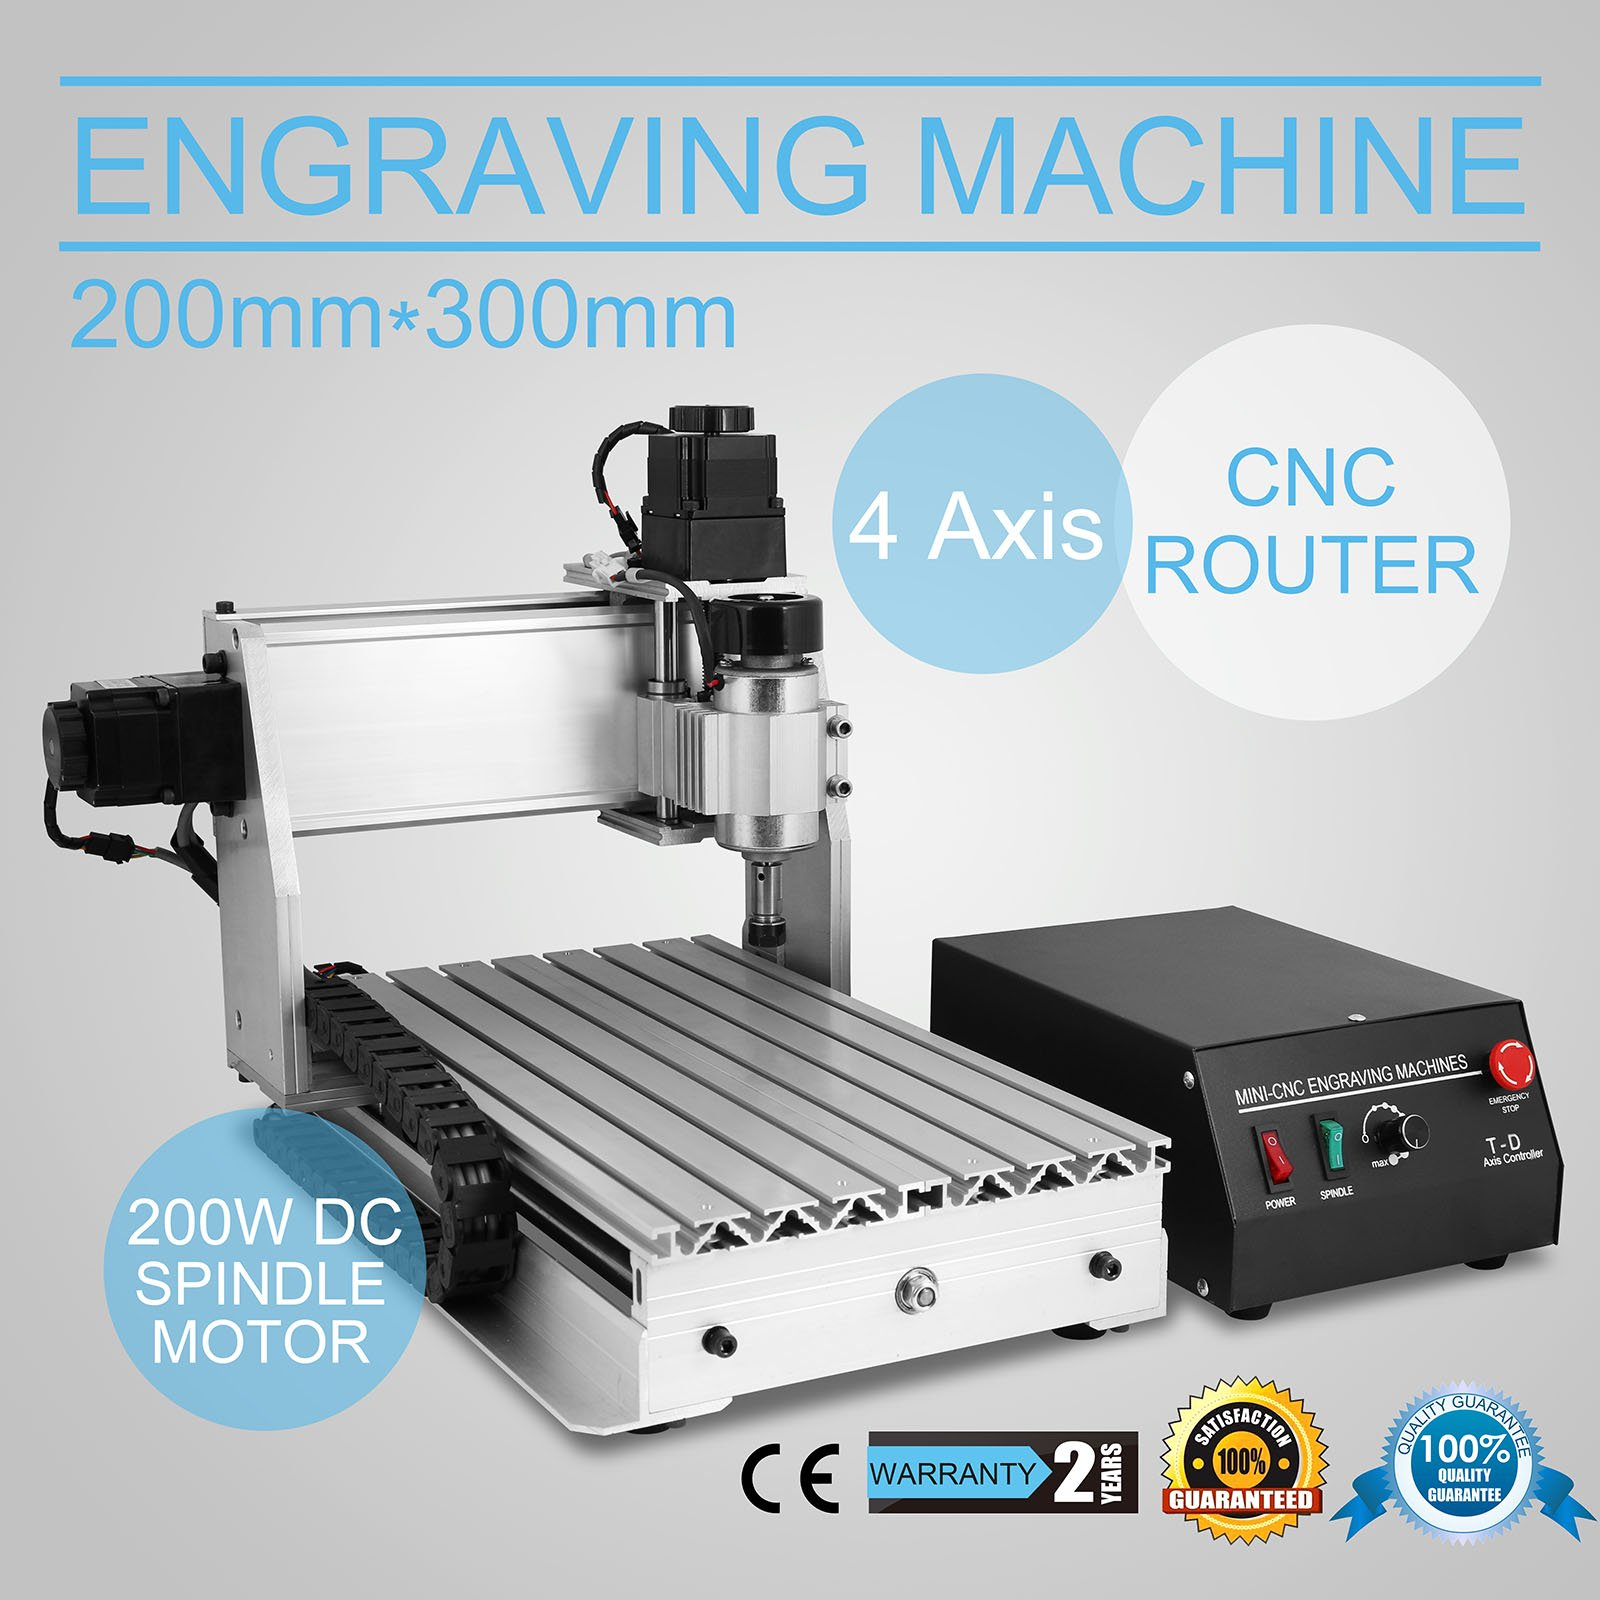 CNCShop CNC Router Engraving Machine Engraver Machine 3020T 4 Axis Desktop Wood Carving Tools Artwork Milling Woodworking with Rotary Axis (3020T 4 Axis)